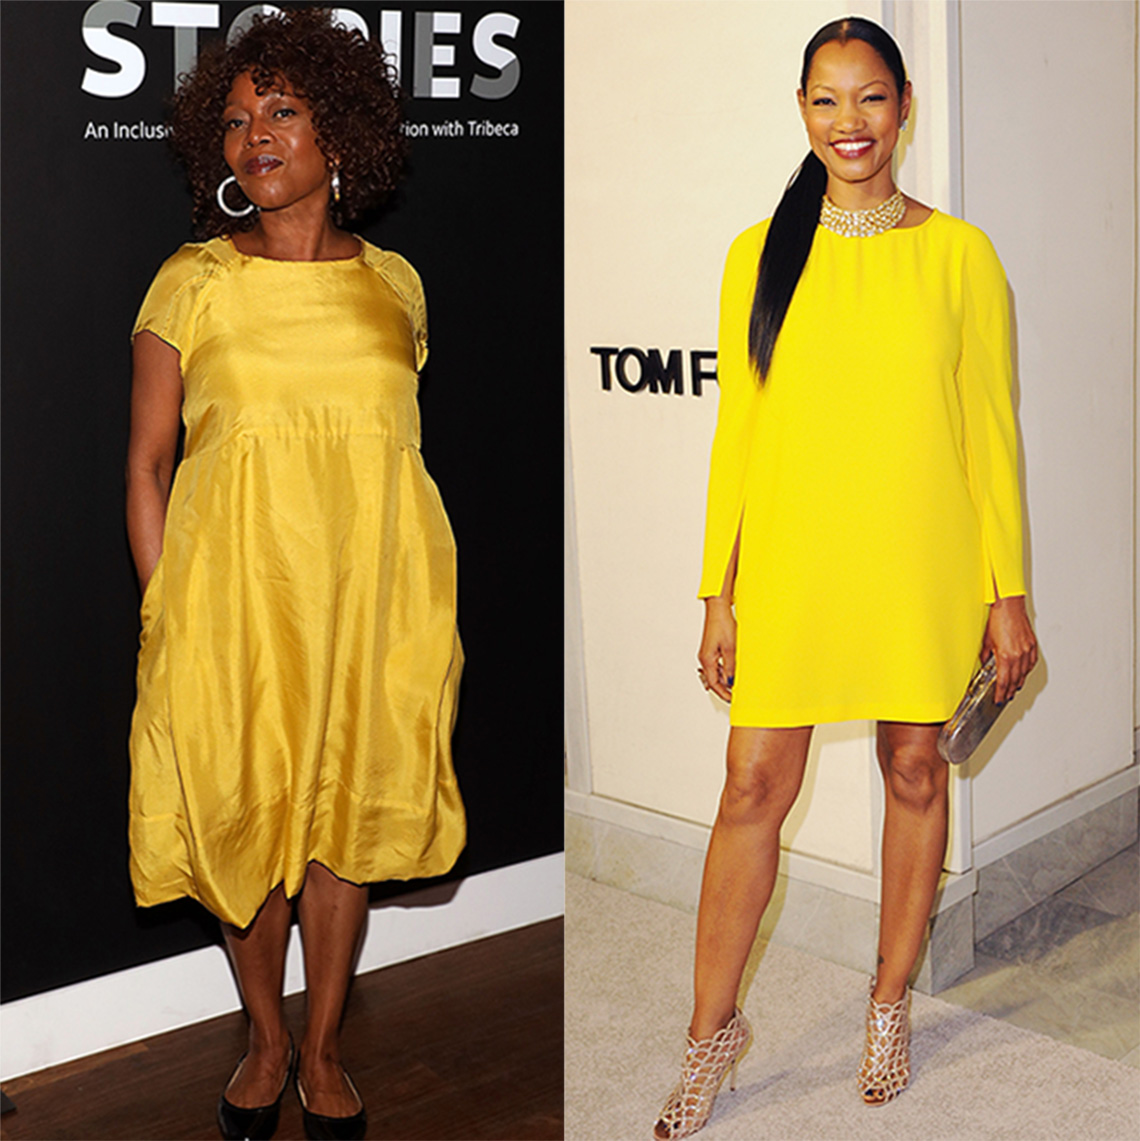 Alfre Woodward and Garcelle Beauvais wearing yellow dresses with sleeves.